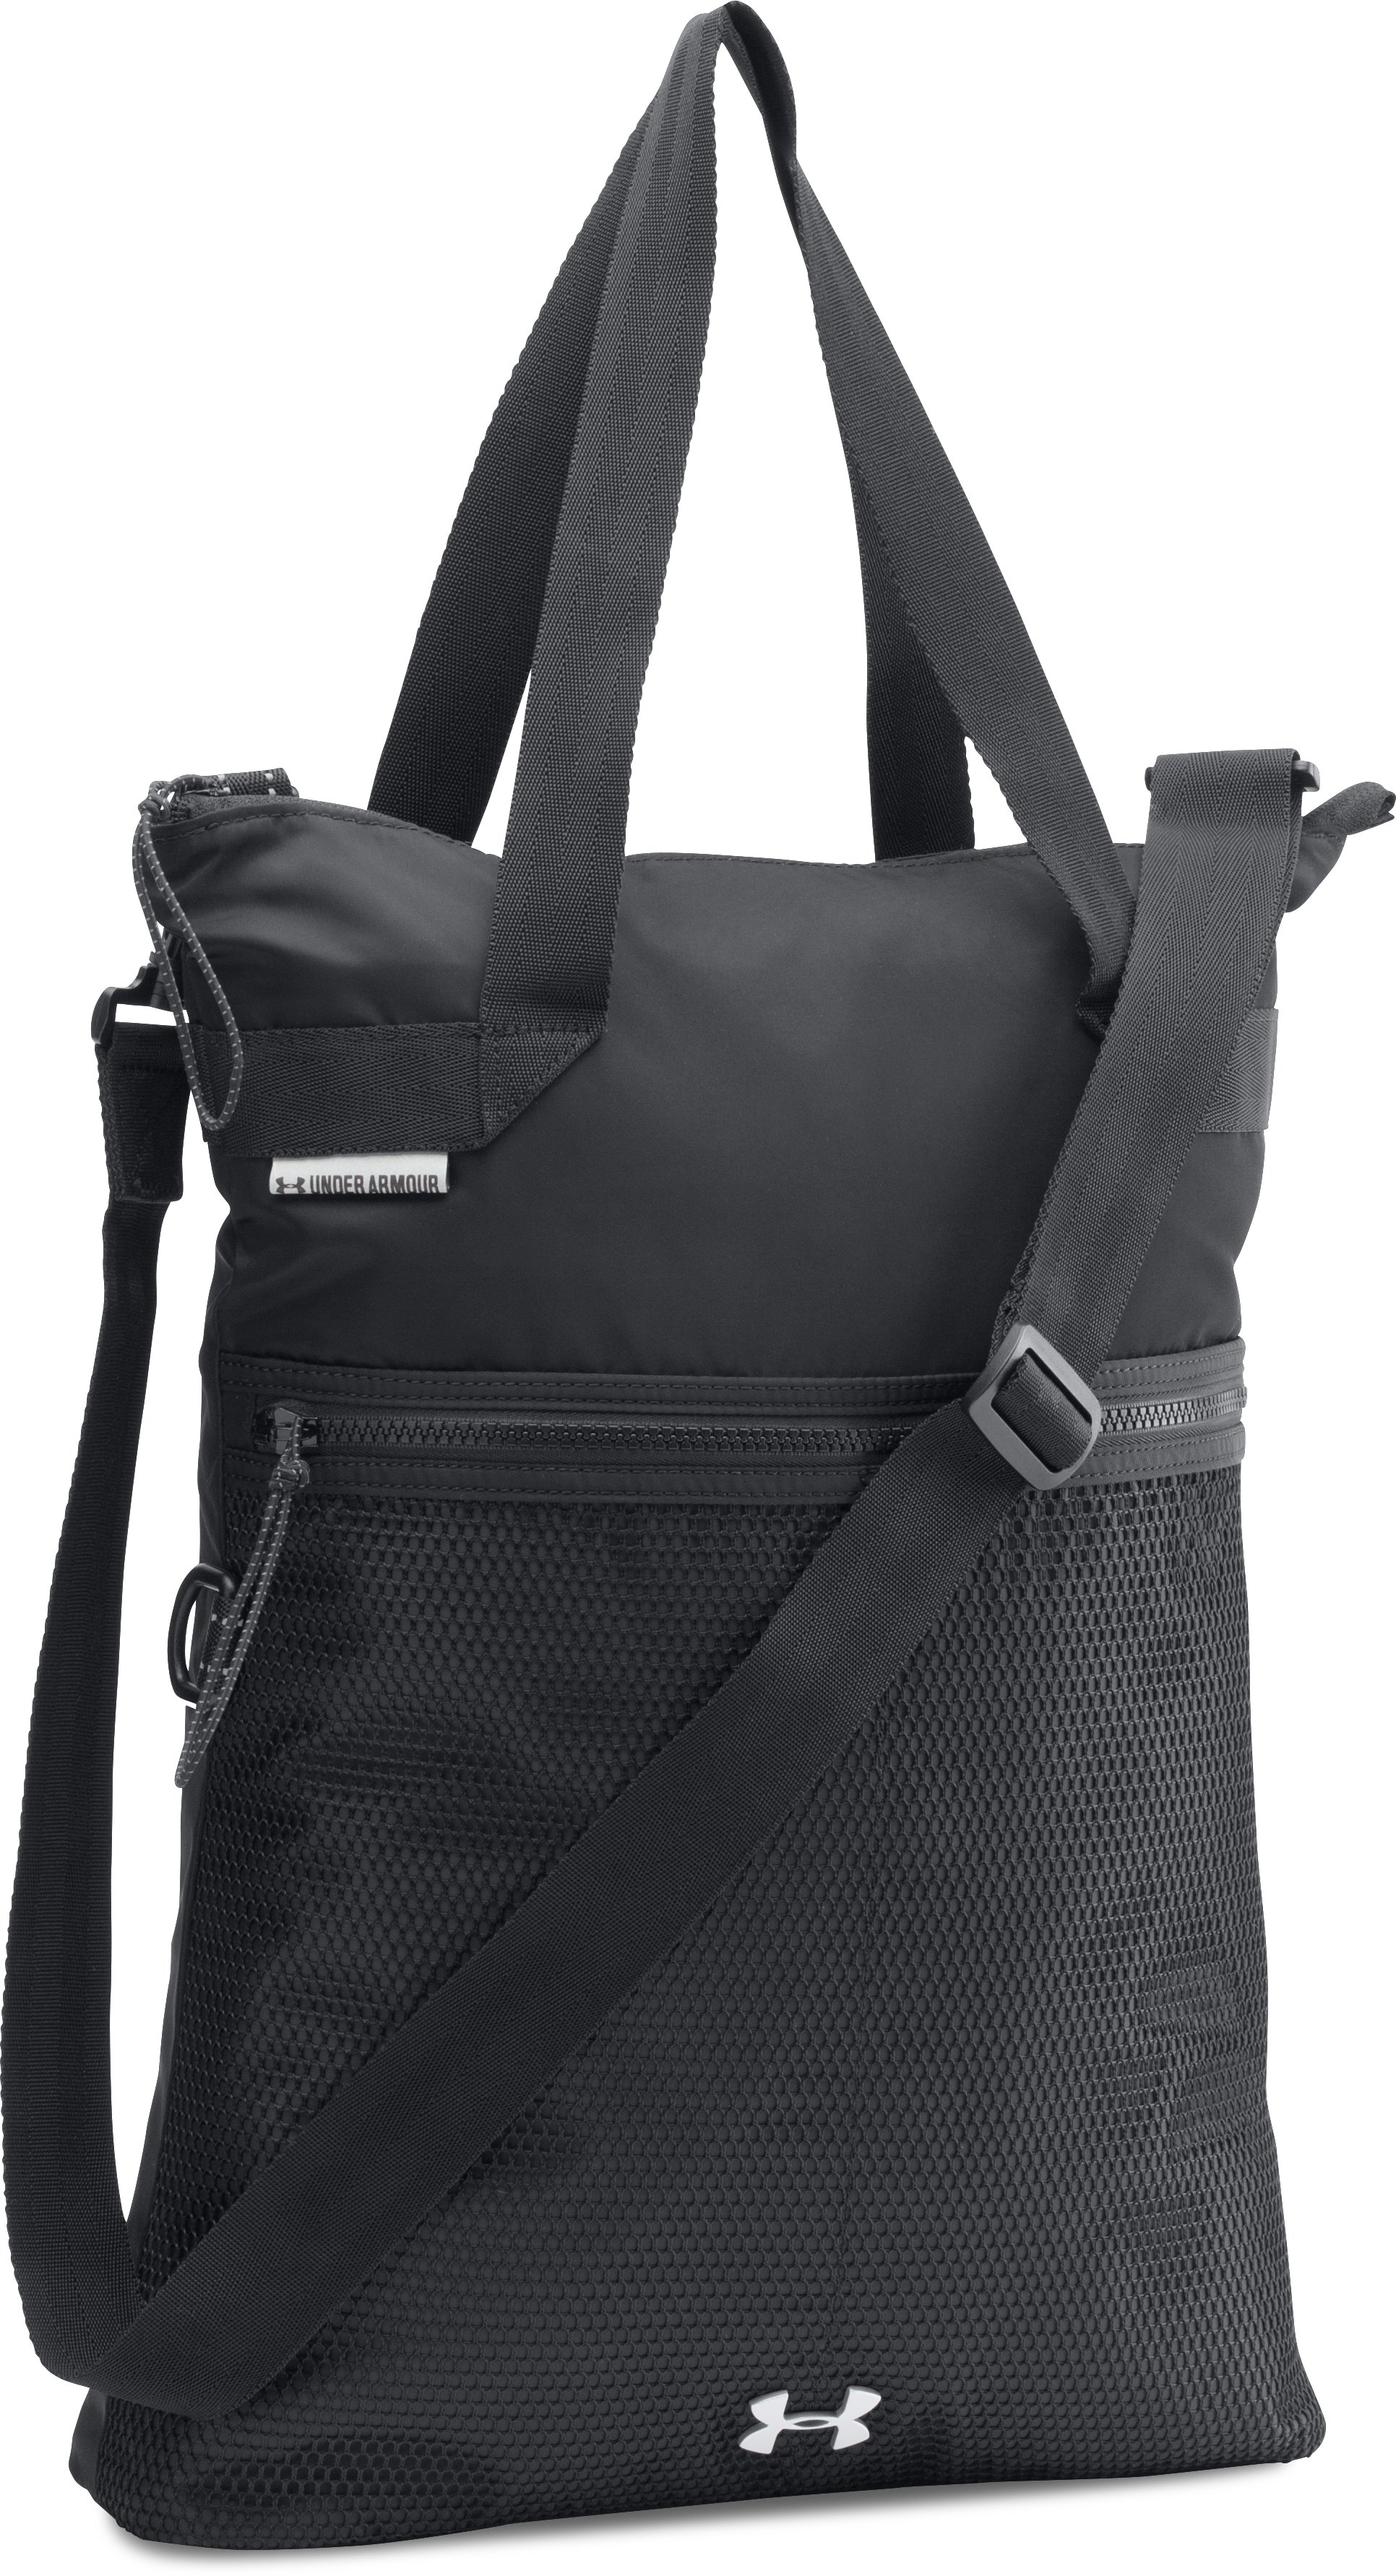 women totes Women's UA Multi-Tasker Tote It's functional while still being stylish and isn't bulky....The shoulder strap is great - it can be removed or tucked inside when not needed....bag is great for carrying your computer around.